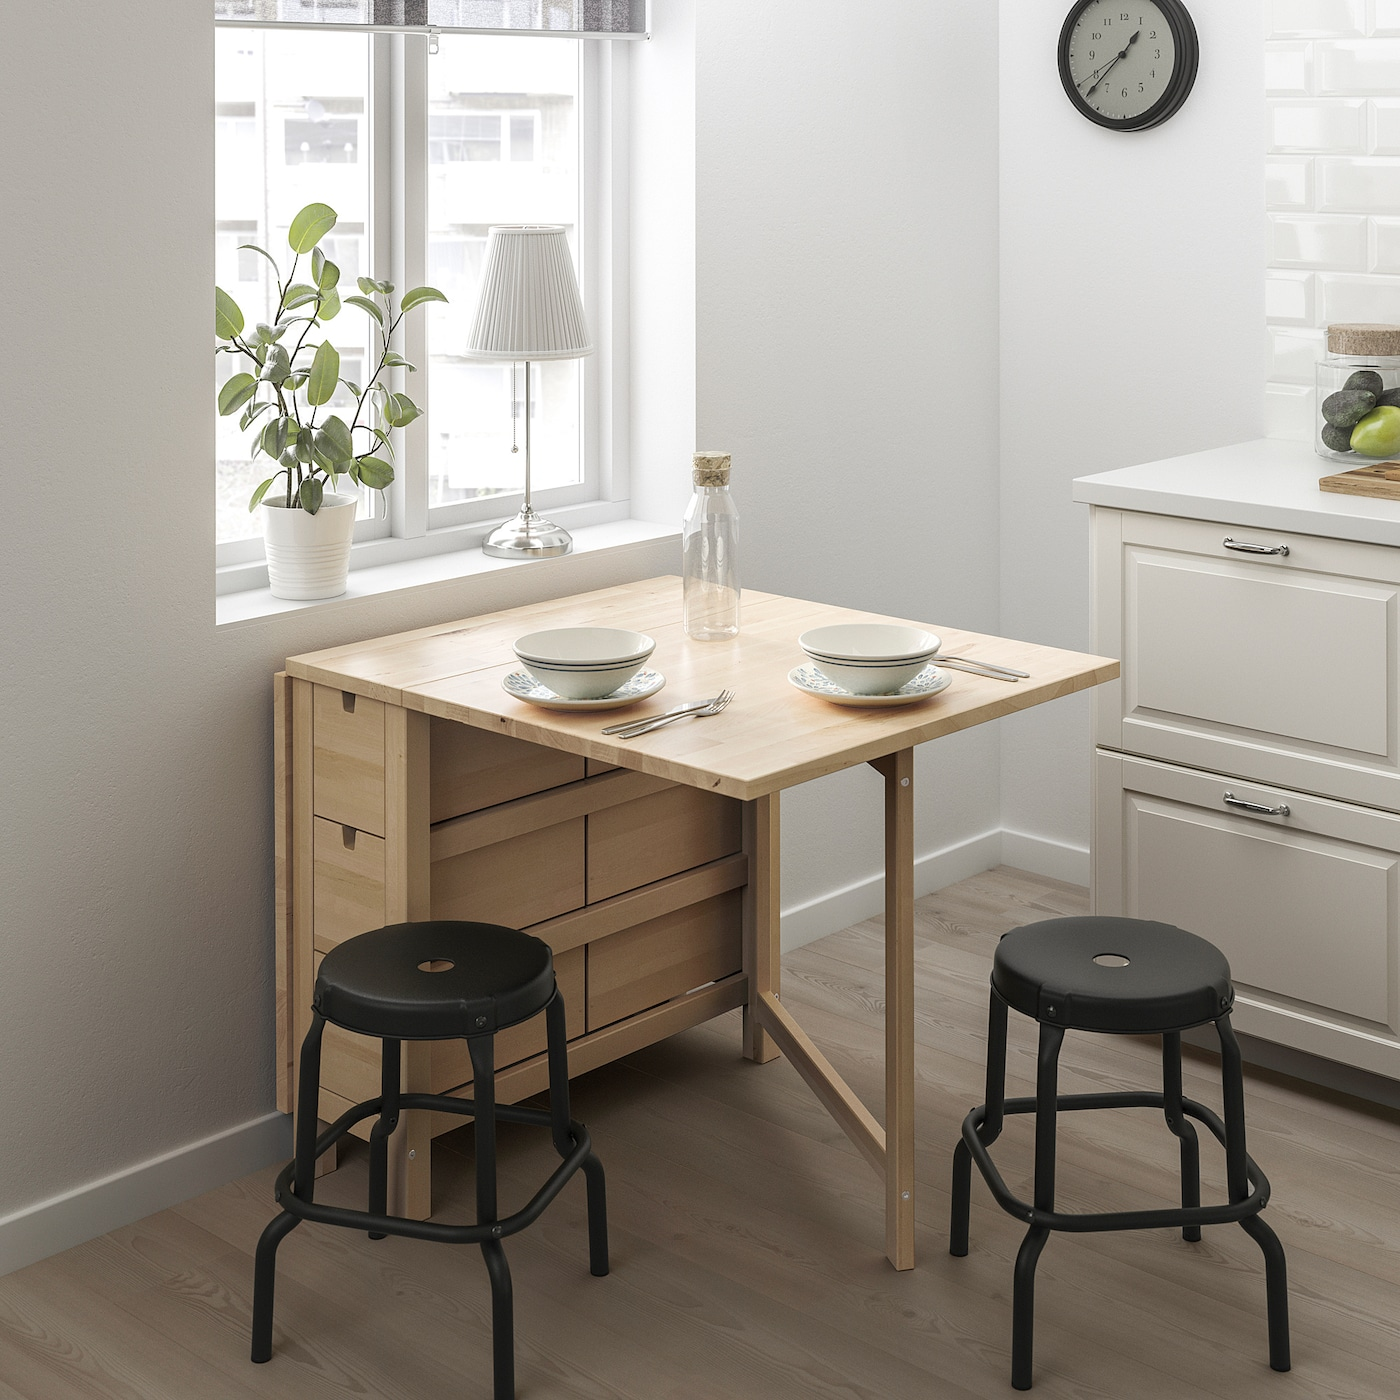 Ikea Norden Table Home And Aplliances